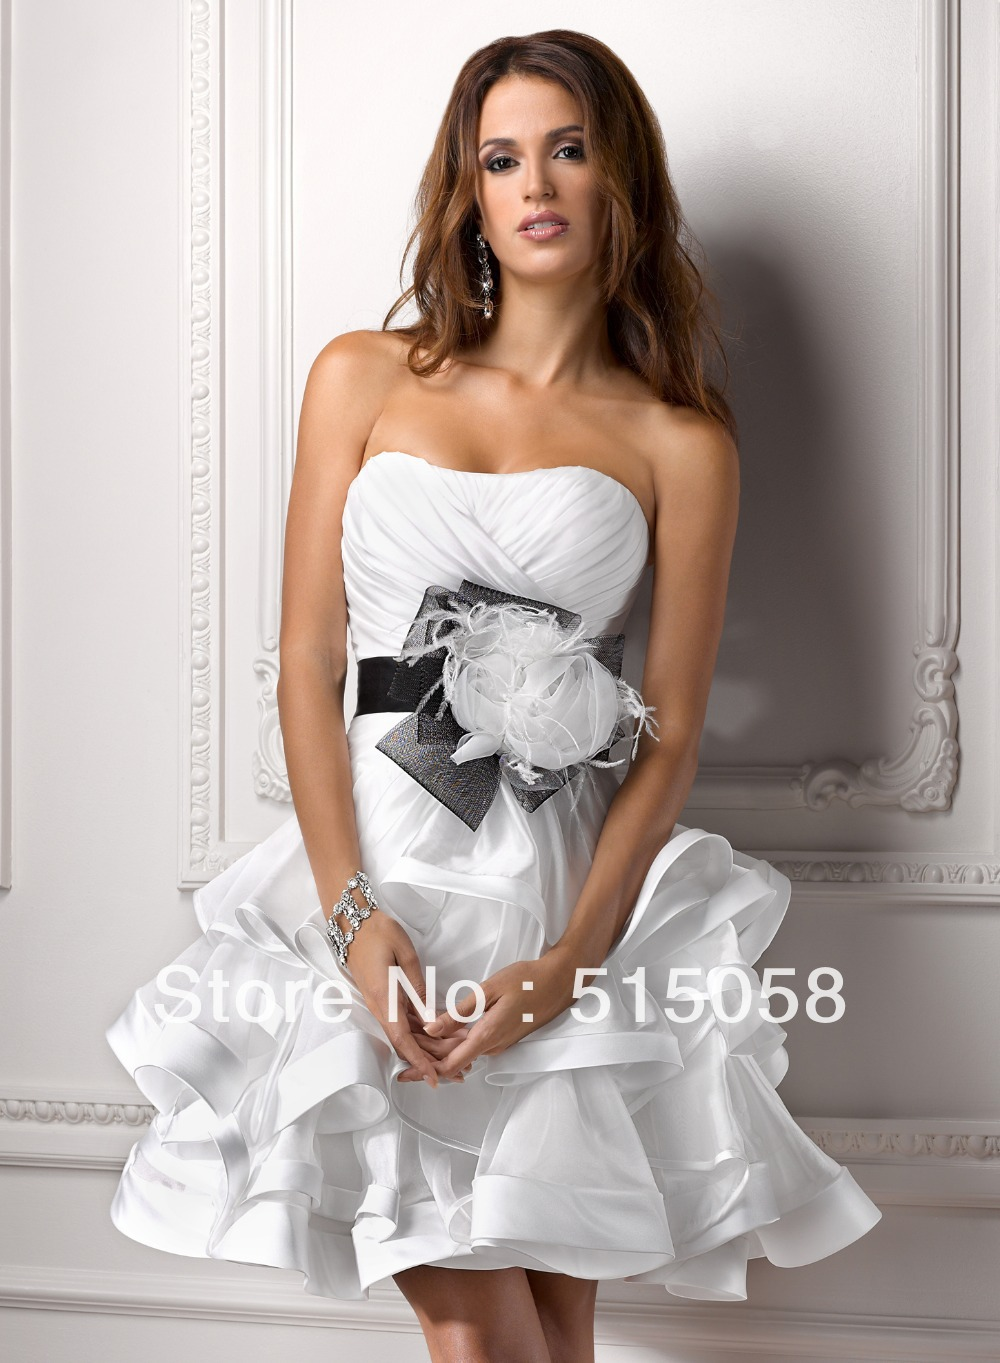 New arrival 2015 sexy sweetheart black sashes white for Bride dress after wedding